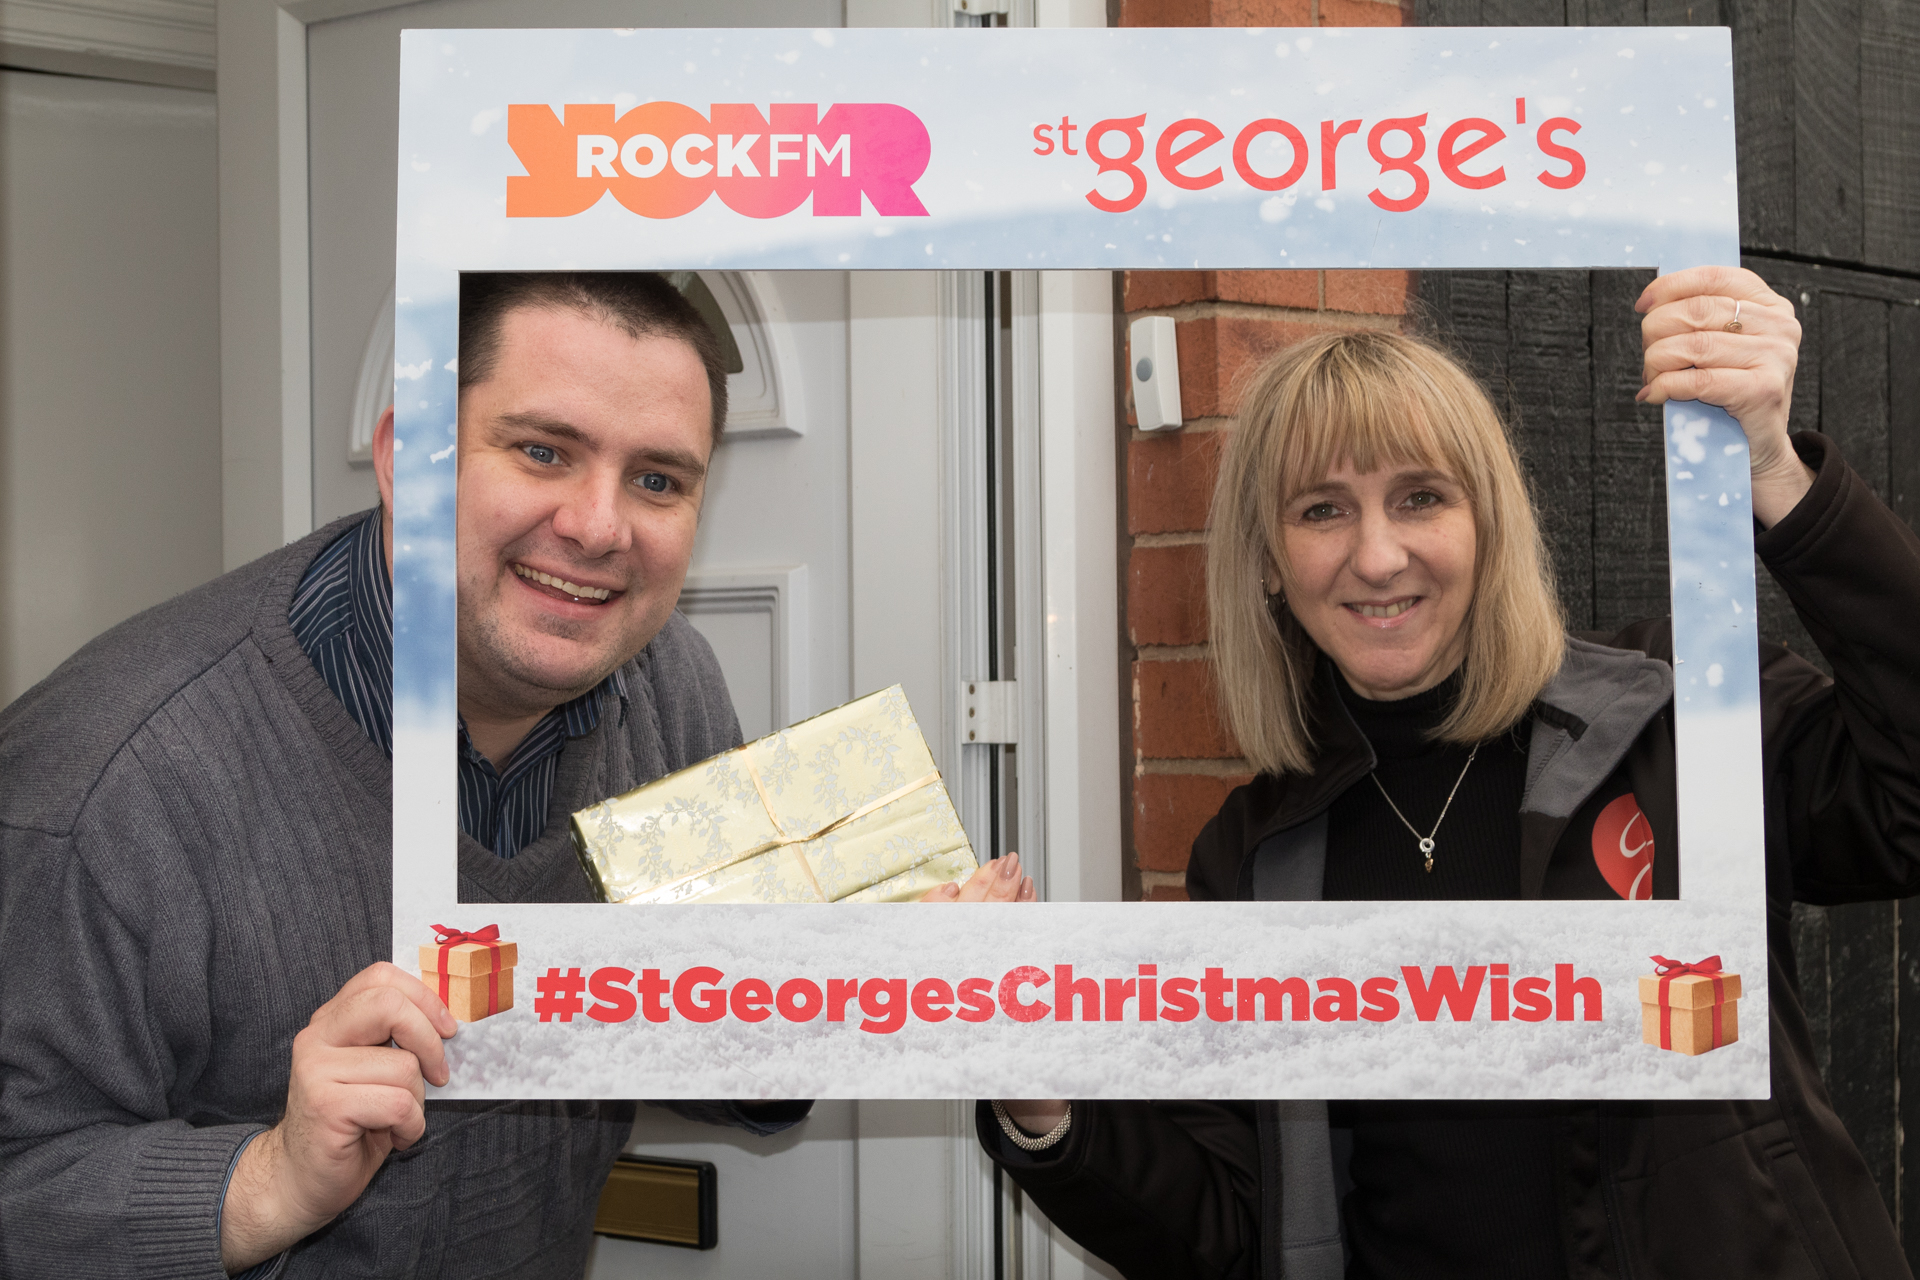 david-robinson-of-chorley-is-presented-with-an-ipad-by-nicky-horton-st-georges-office-mananger